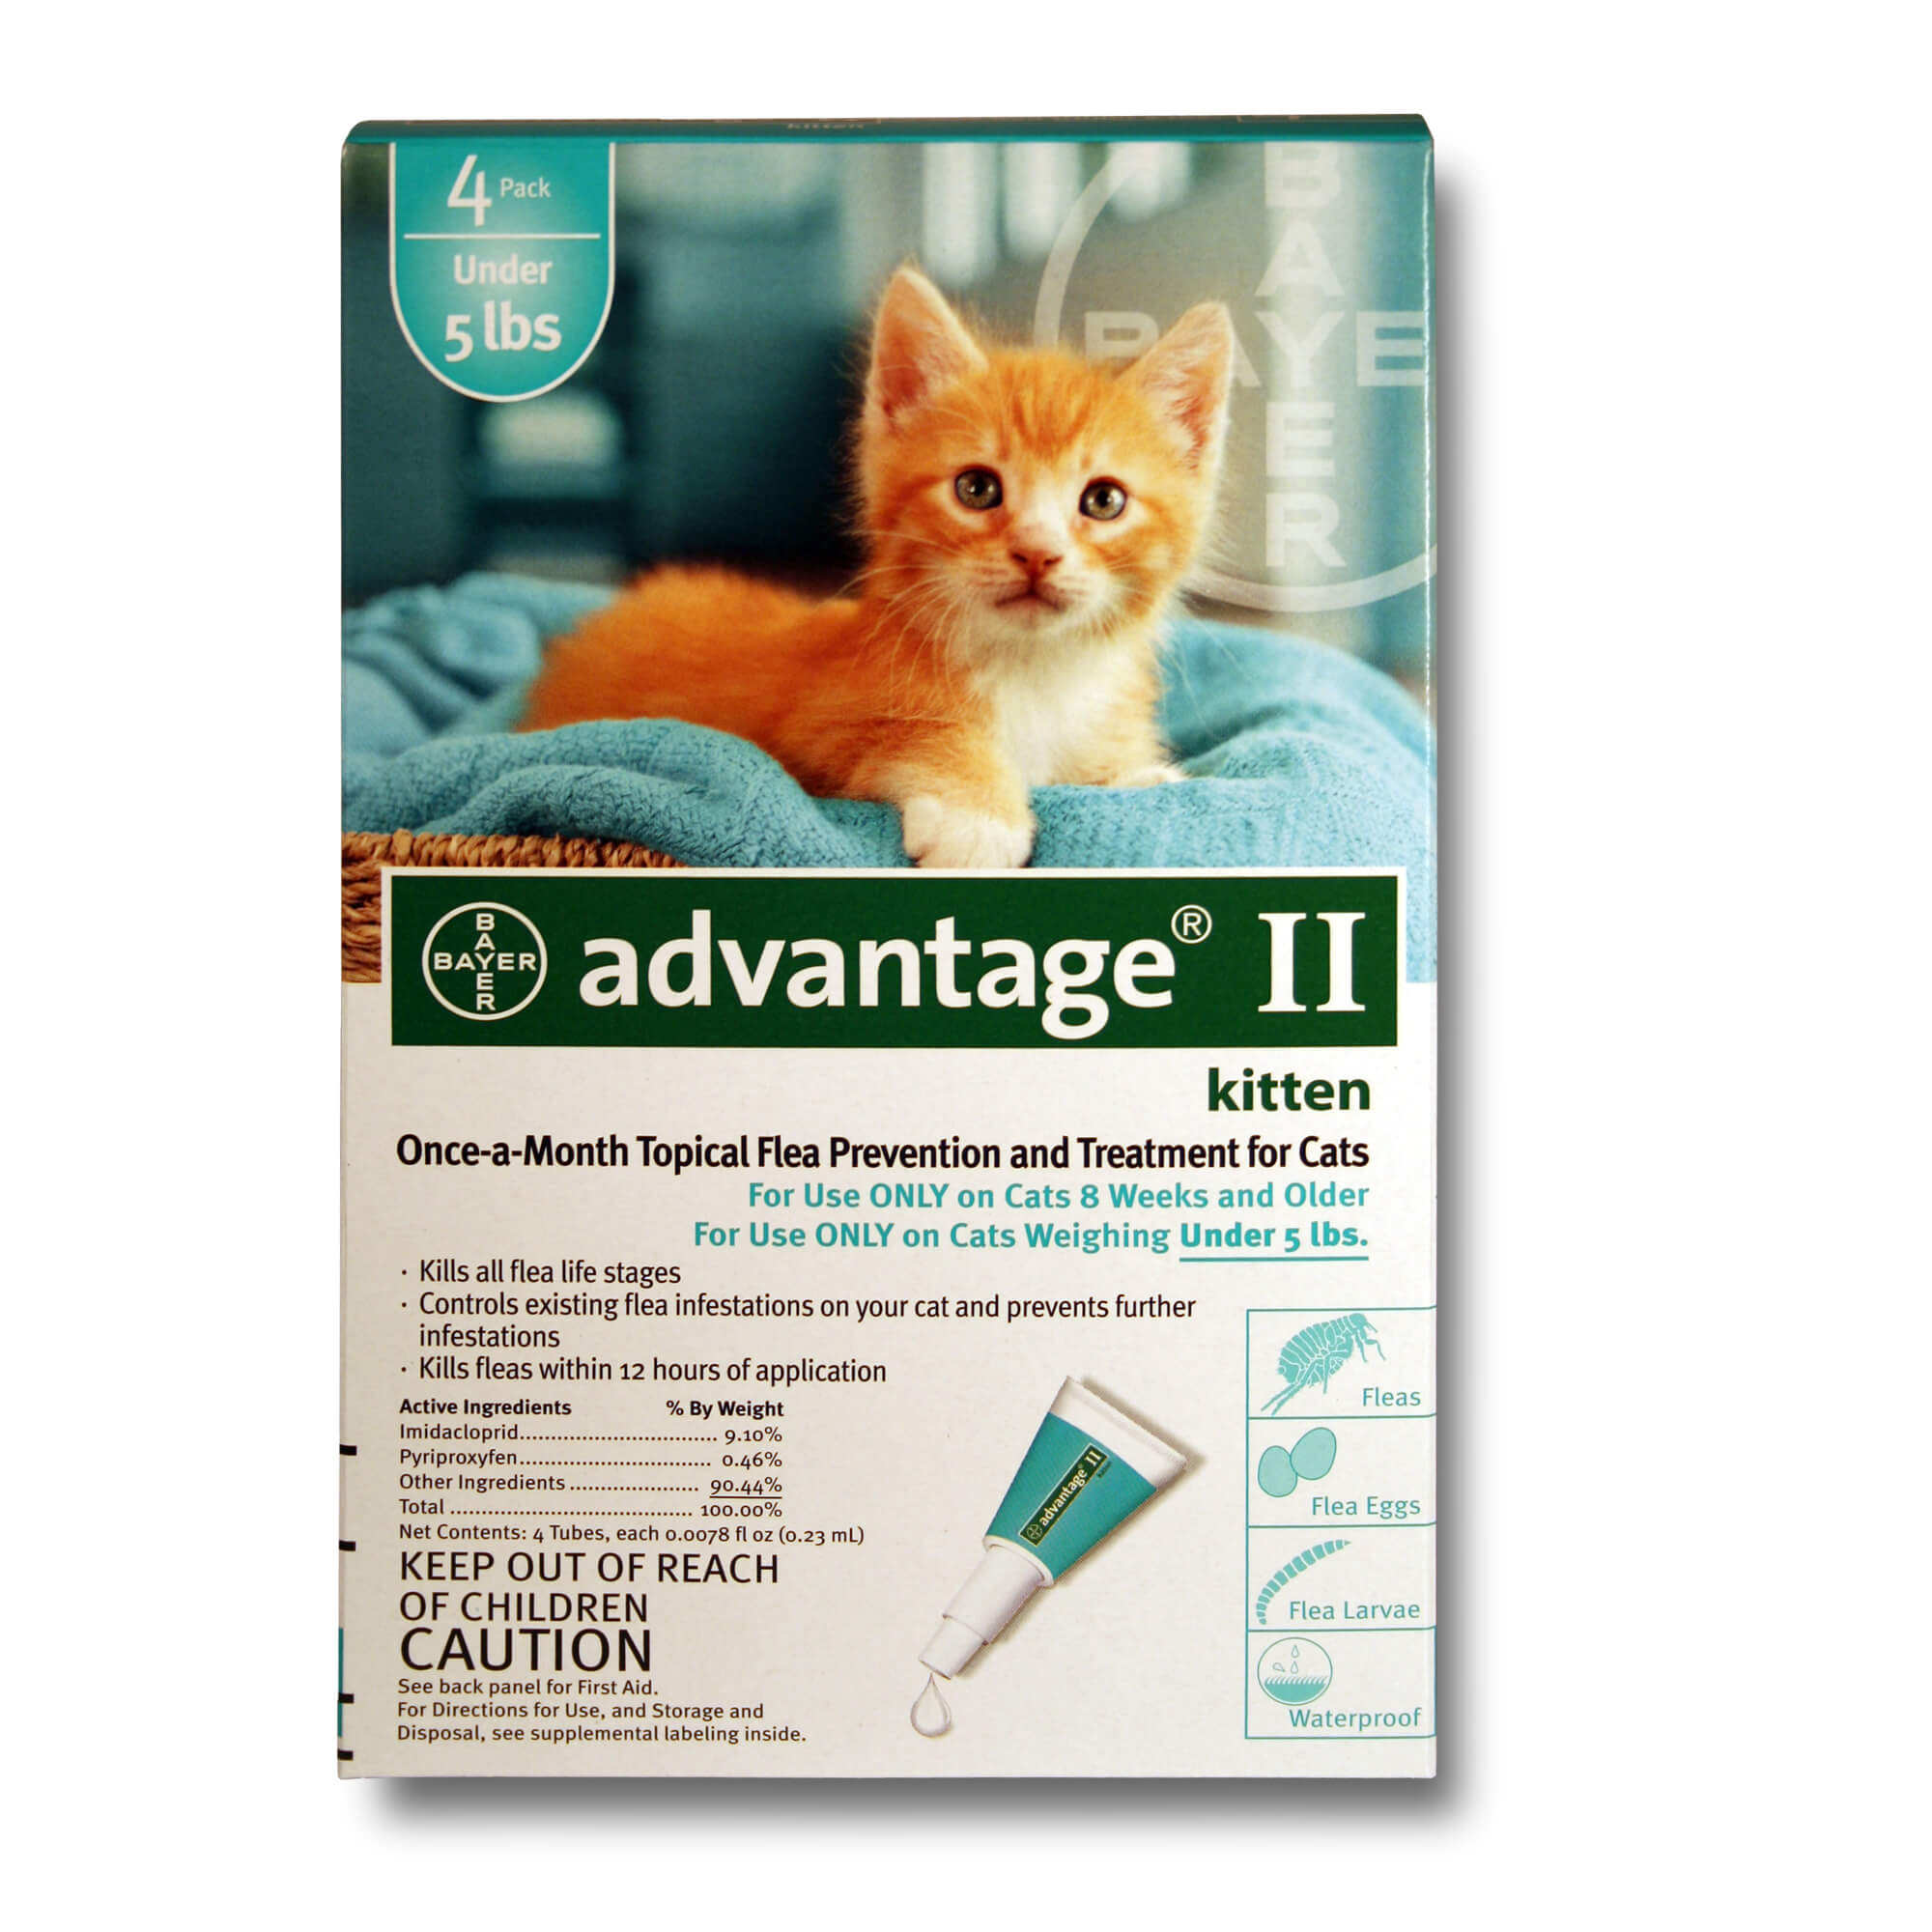 Advantage Kittens And Small Cats Bayer Info